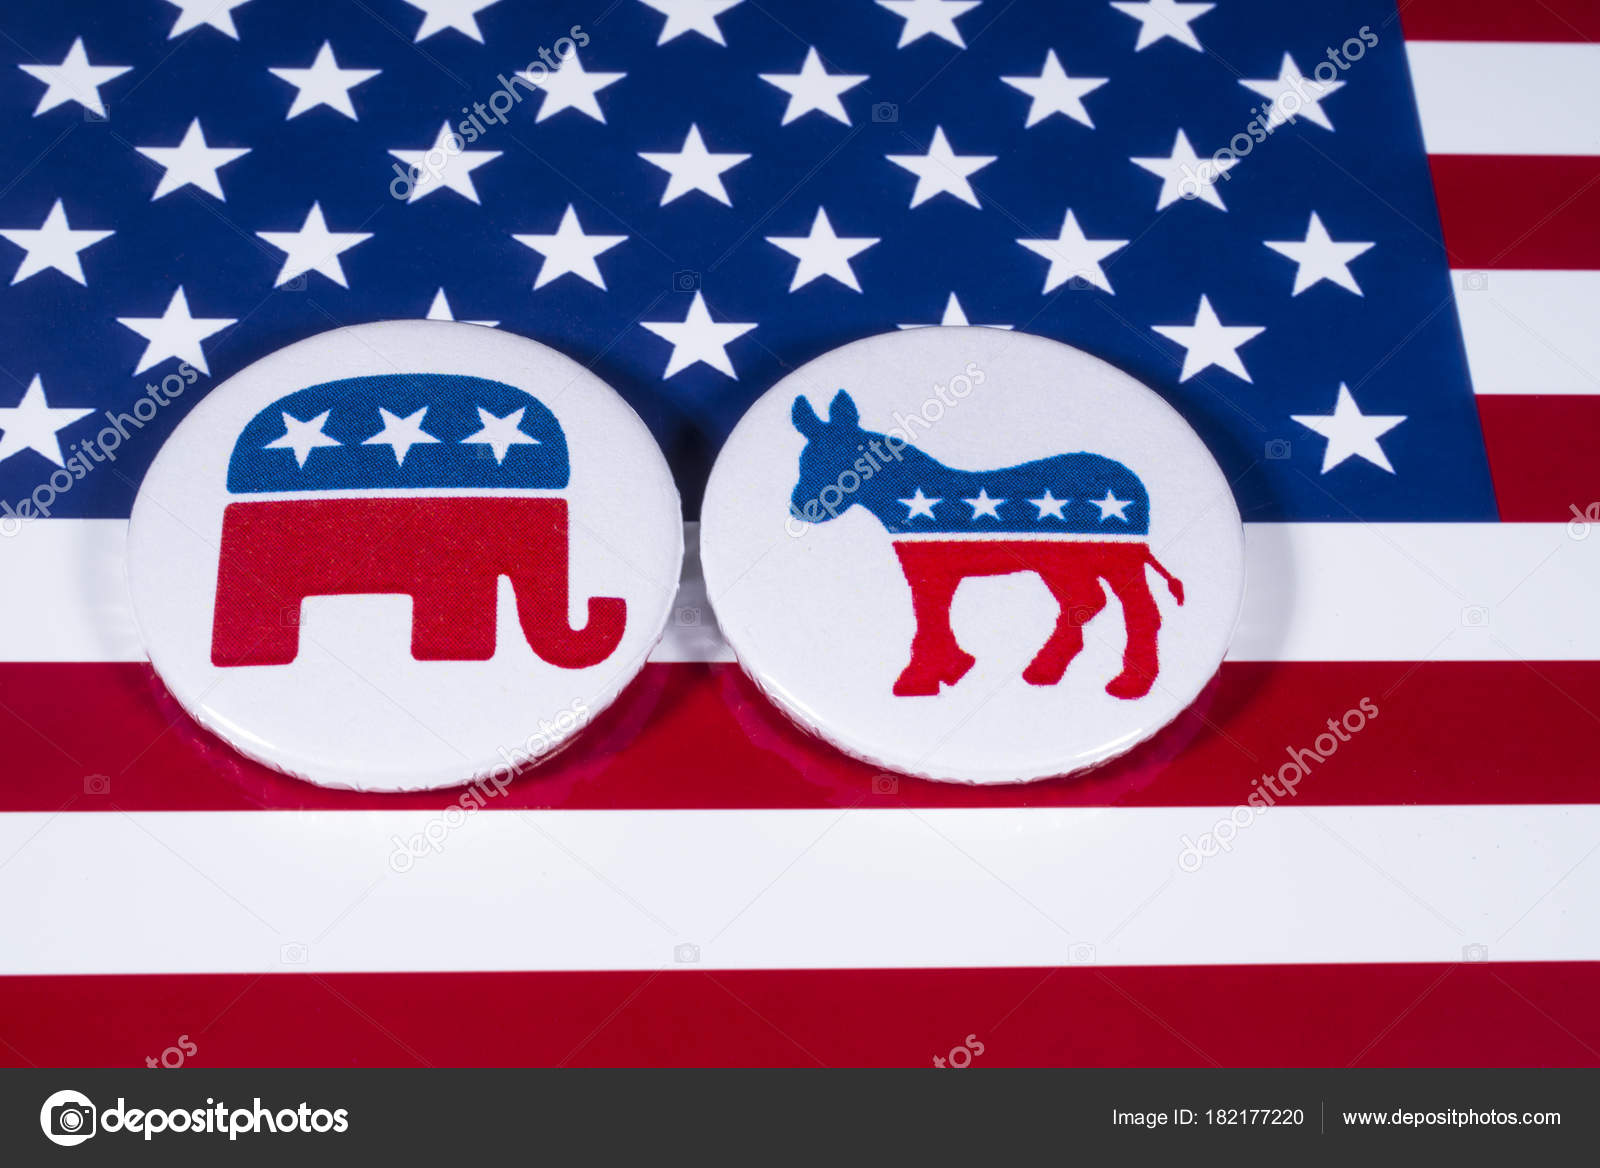 Symbol of democrats images symbol and sign ideas republicans and democrats stock editorial photo chrisdorney london uk december 18th 2017 the elephant symbol of biocorpaavc Image collections